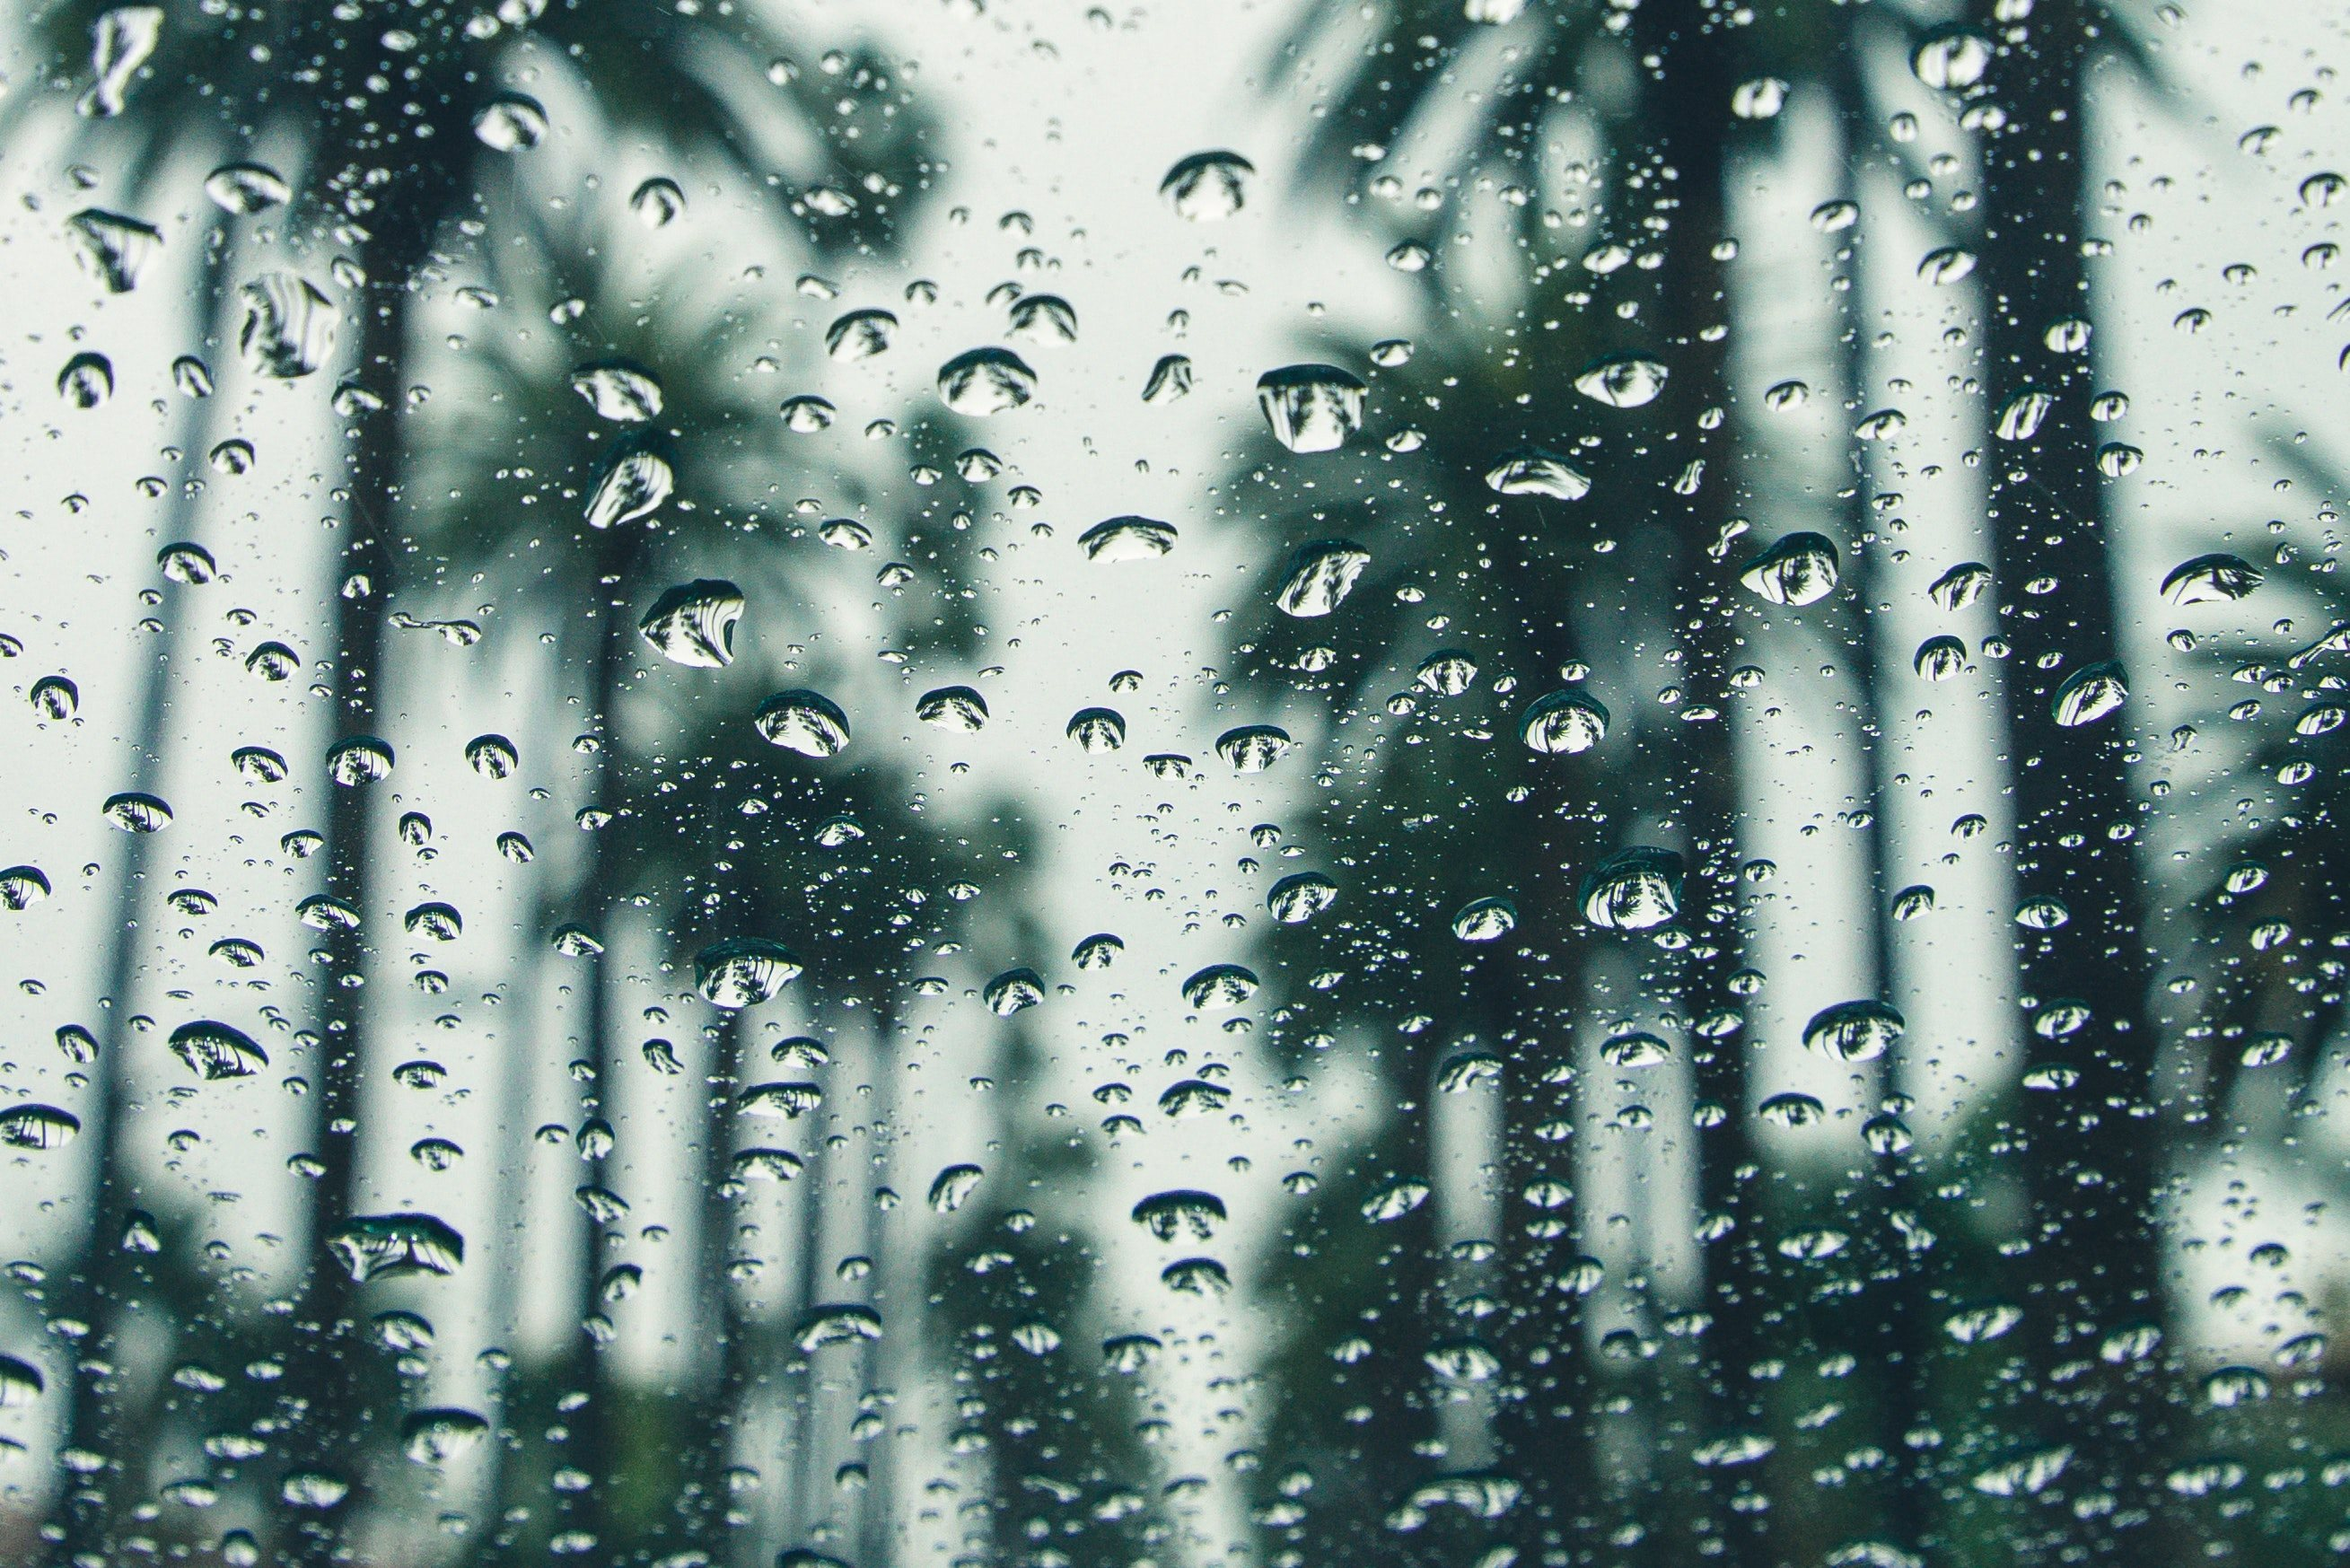 Stock Image of Window with Raindrops and out of Focus Palm Trees in the Background